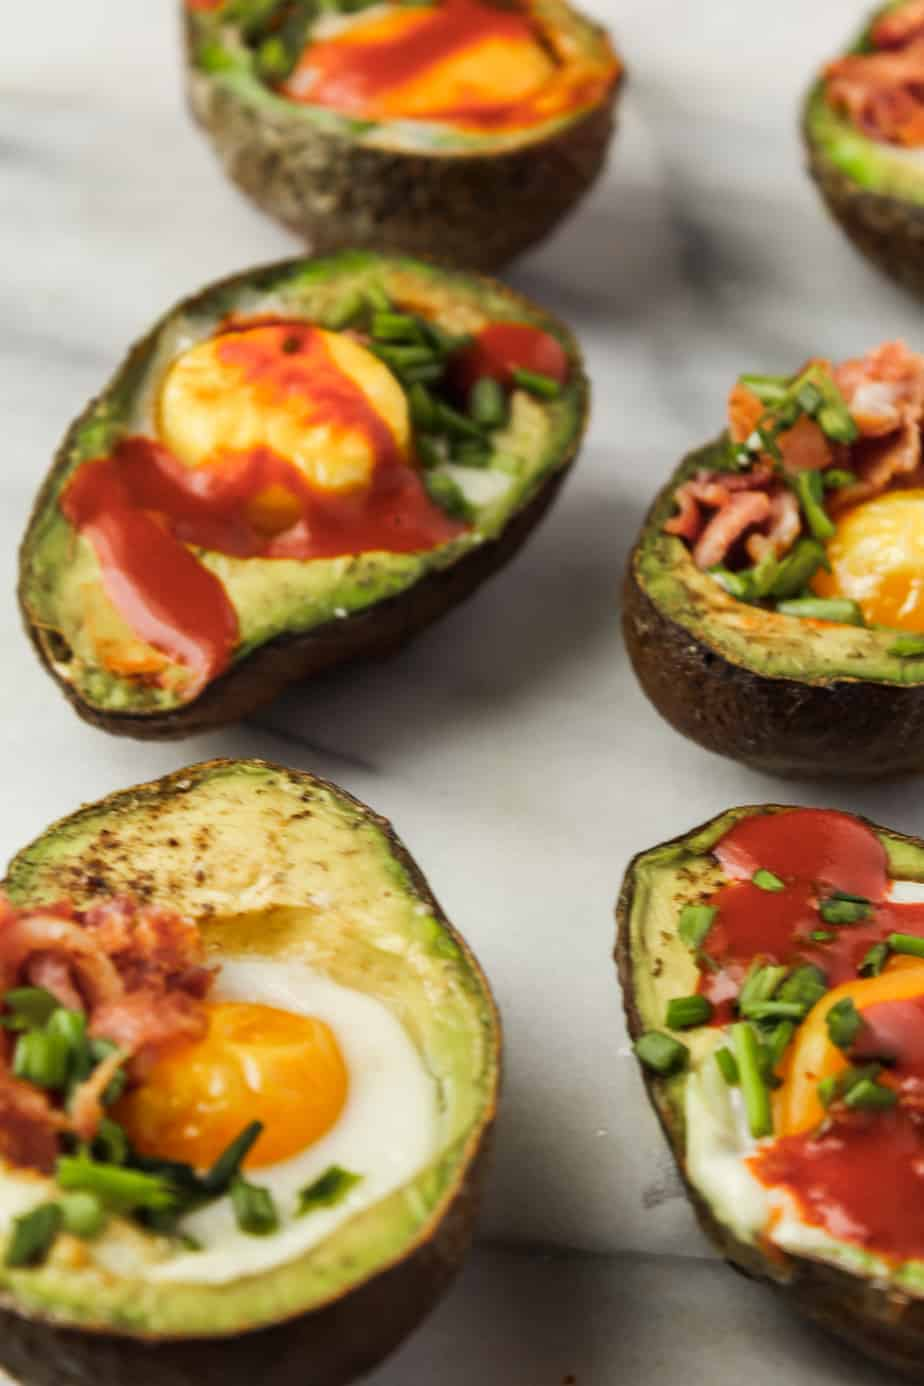 whole30 breakfast ideas: baked eggs in avocado with hot sauce